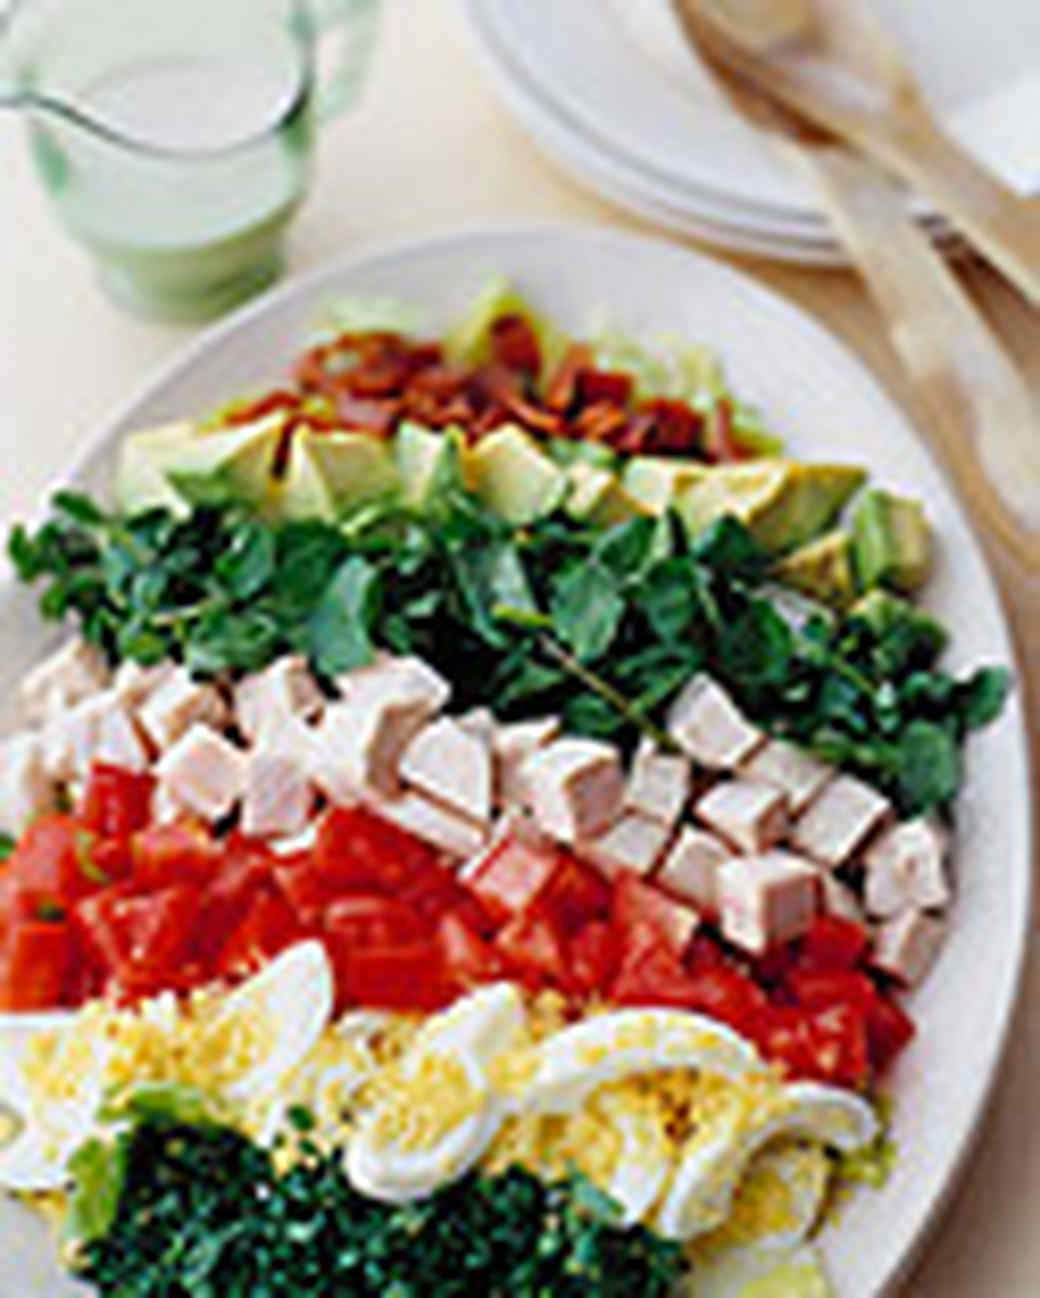 Salads Recipes Healthy  Healthy Salad Recipes Perfect for a Main or Side Dish